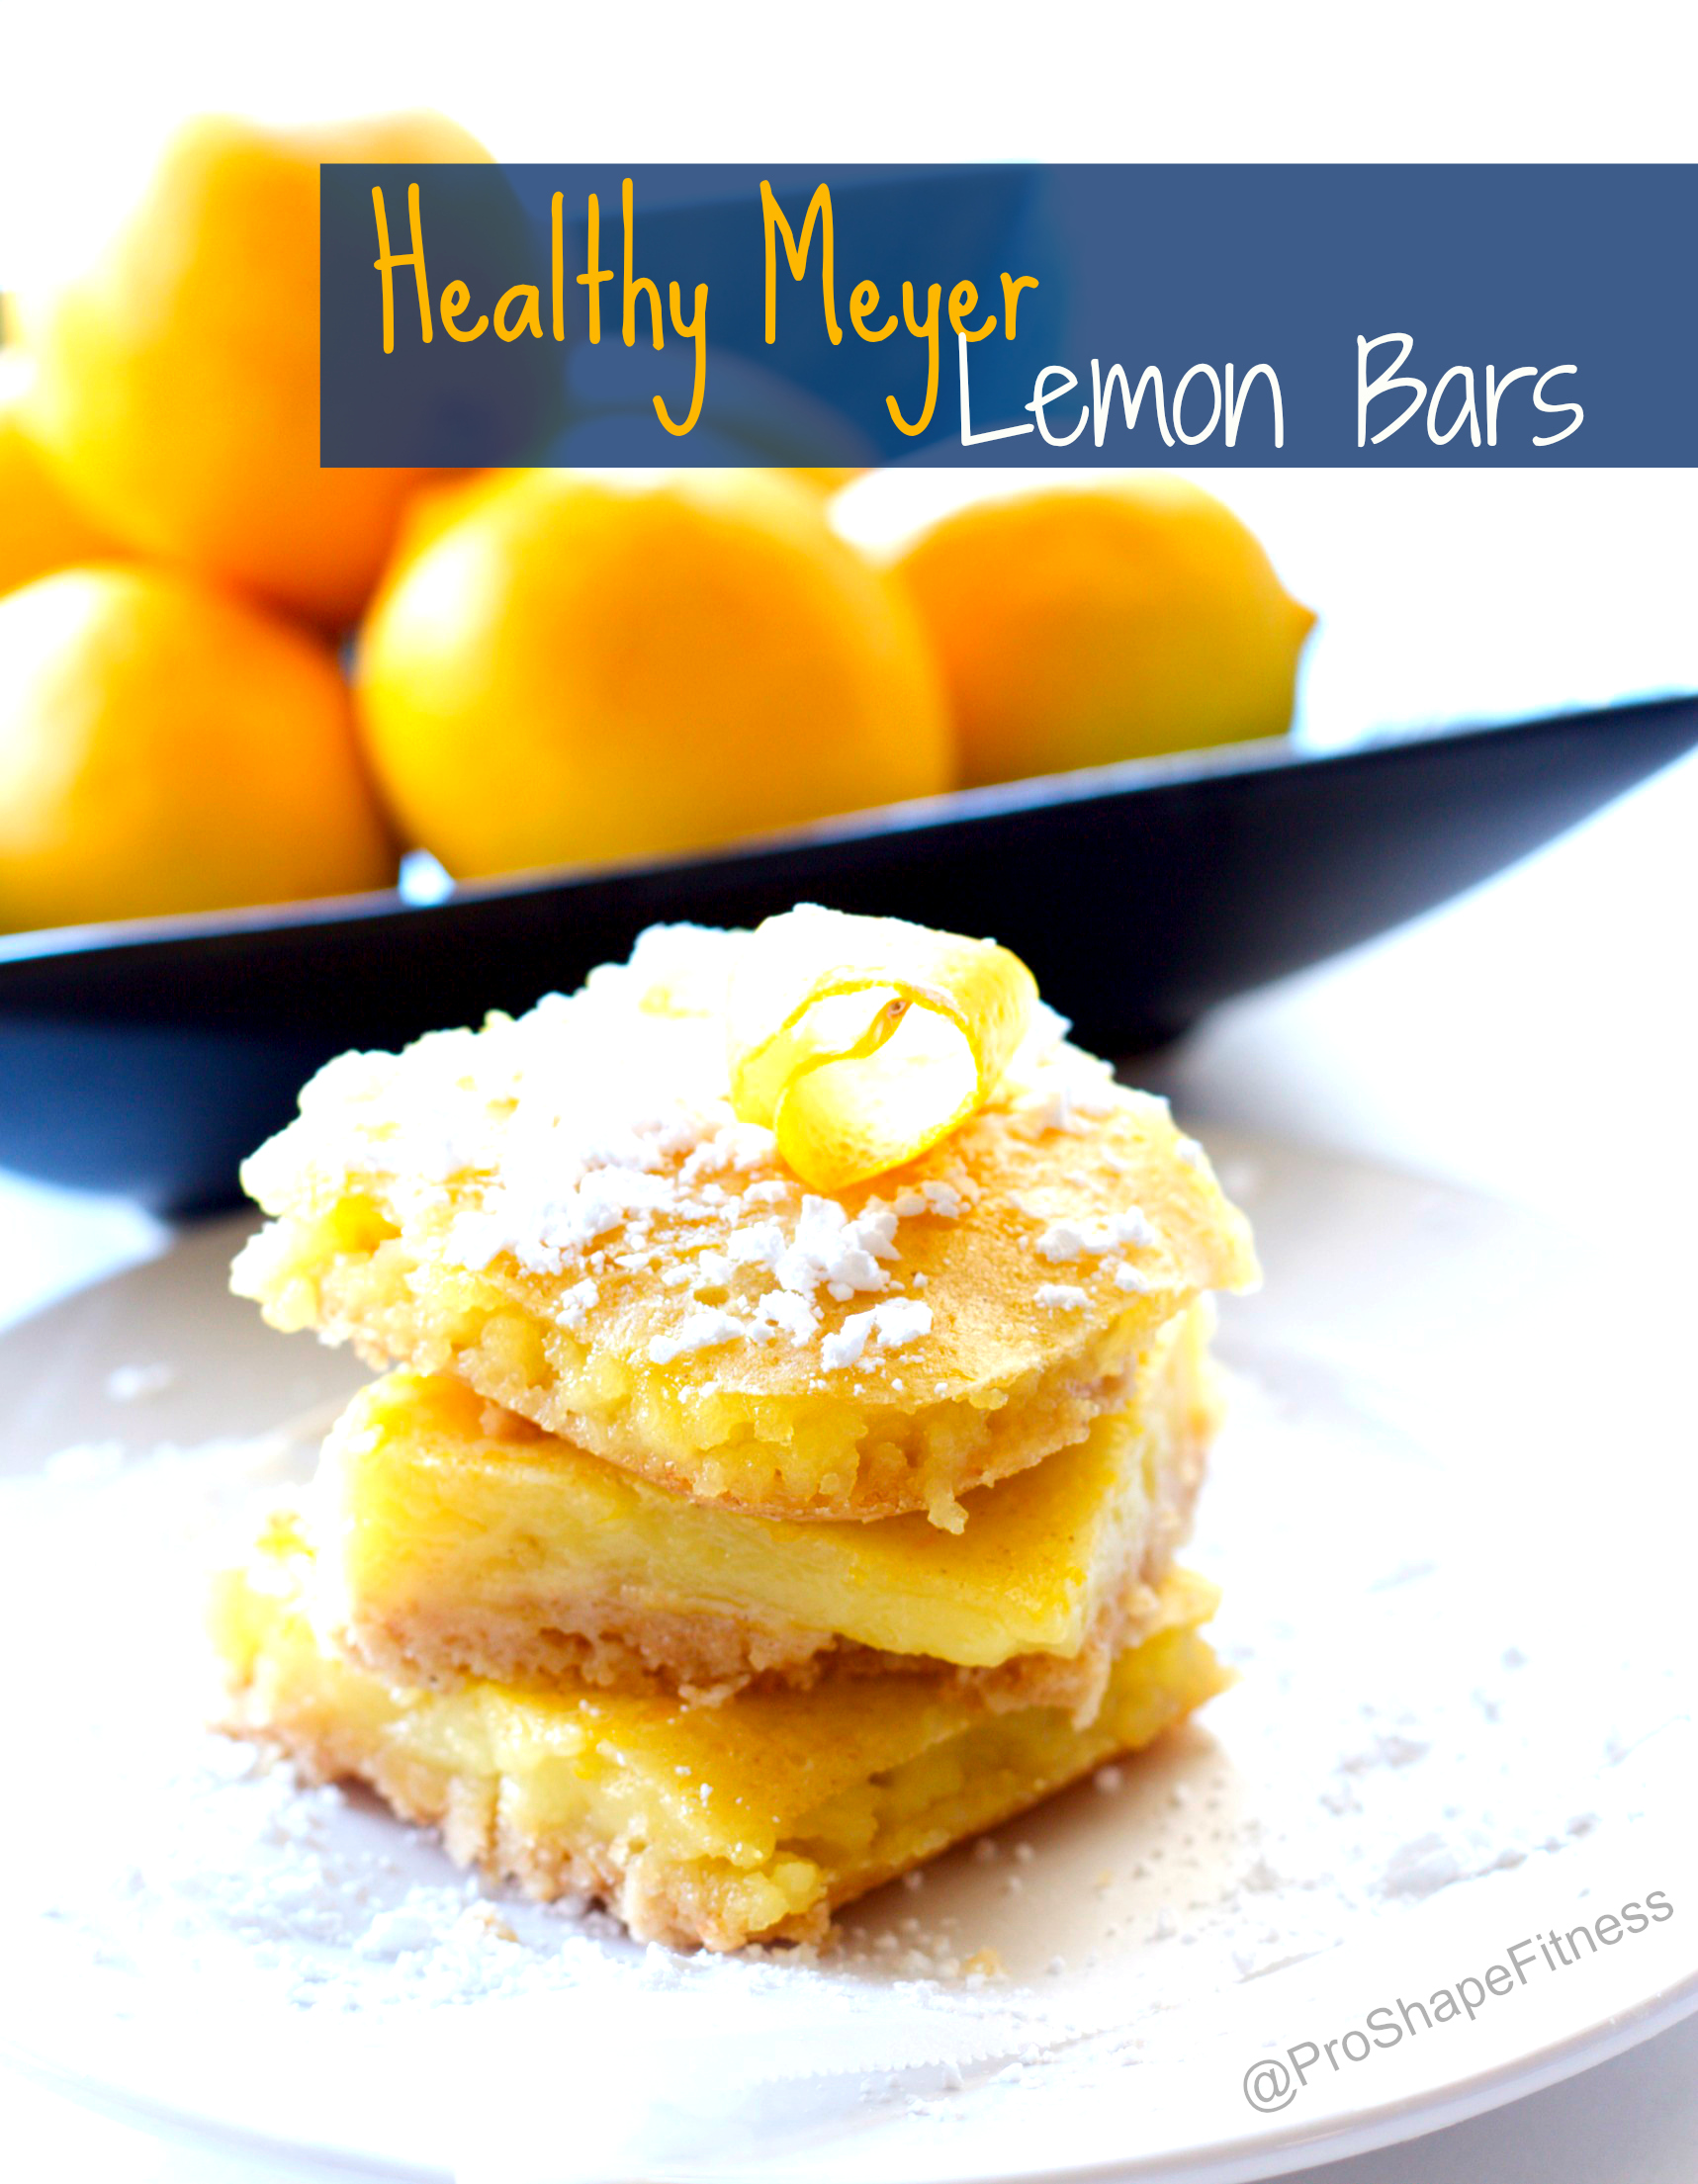 Healthy Meyer Lemon Bars - ProShapeFitness